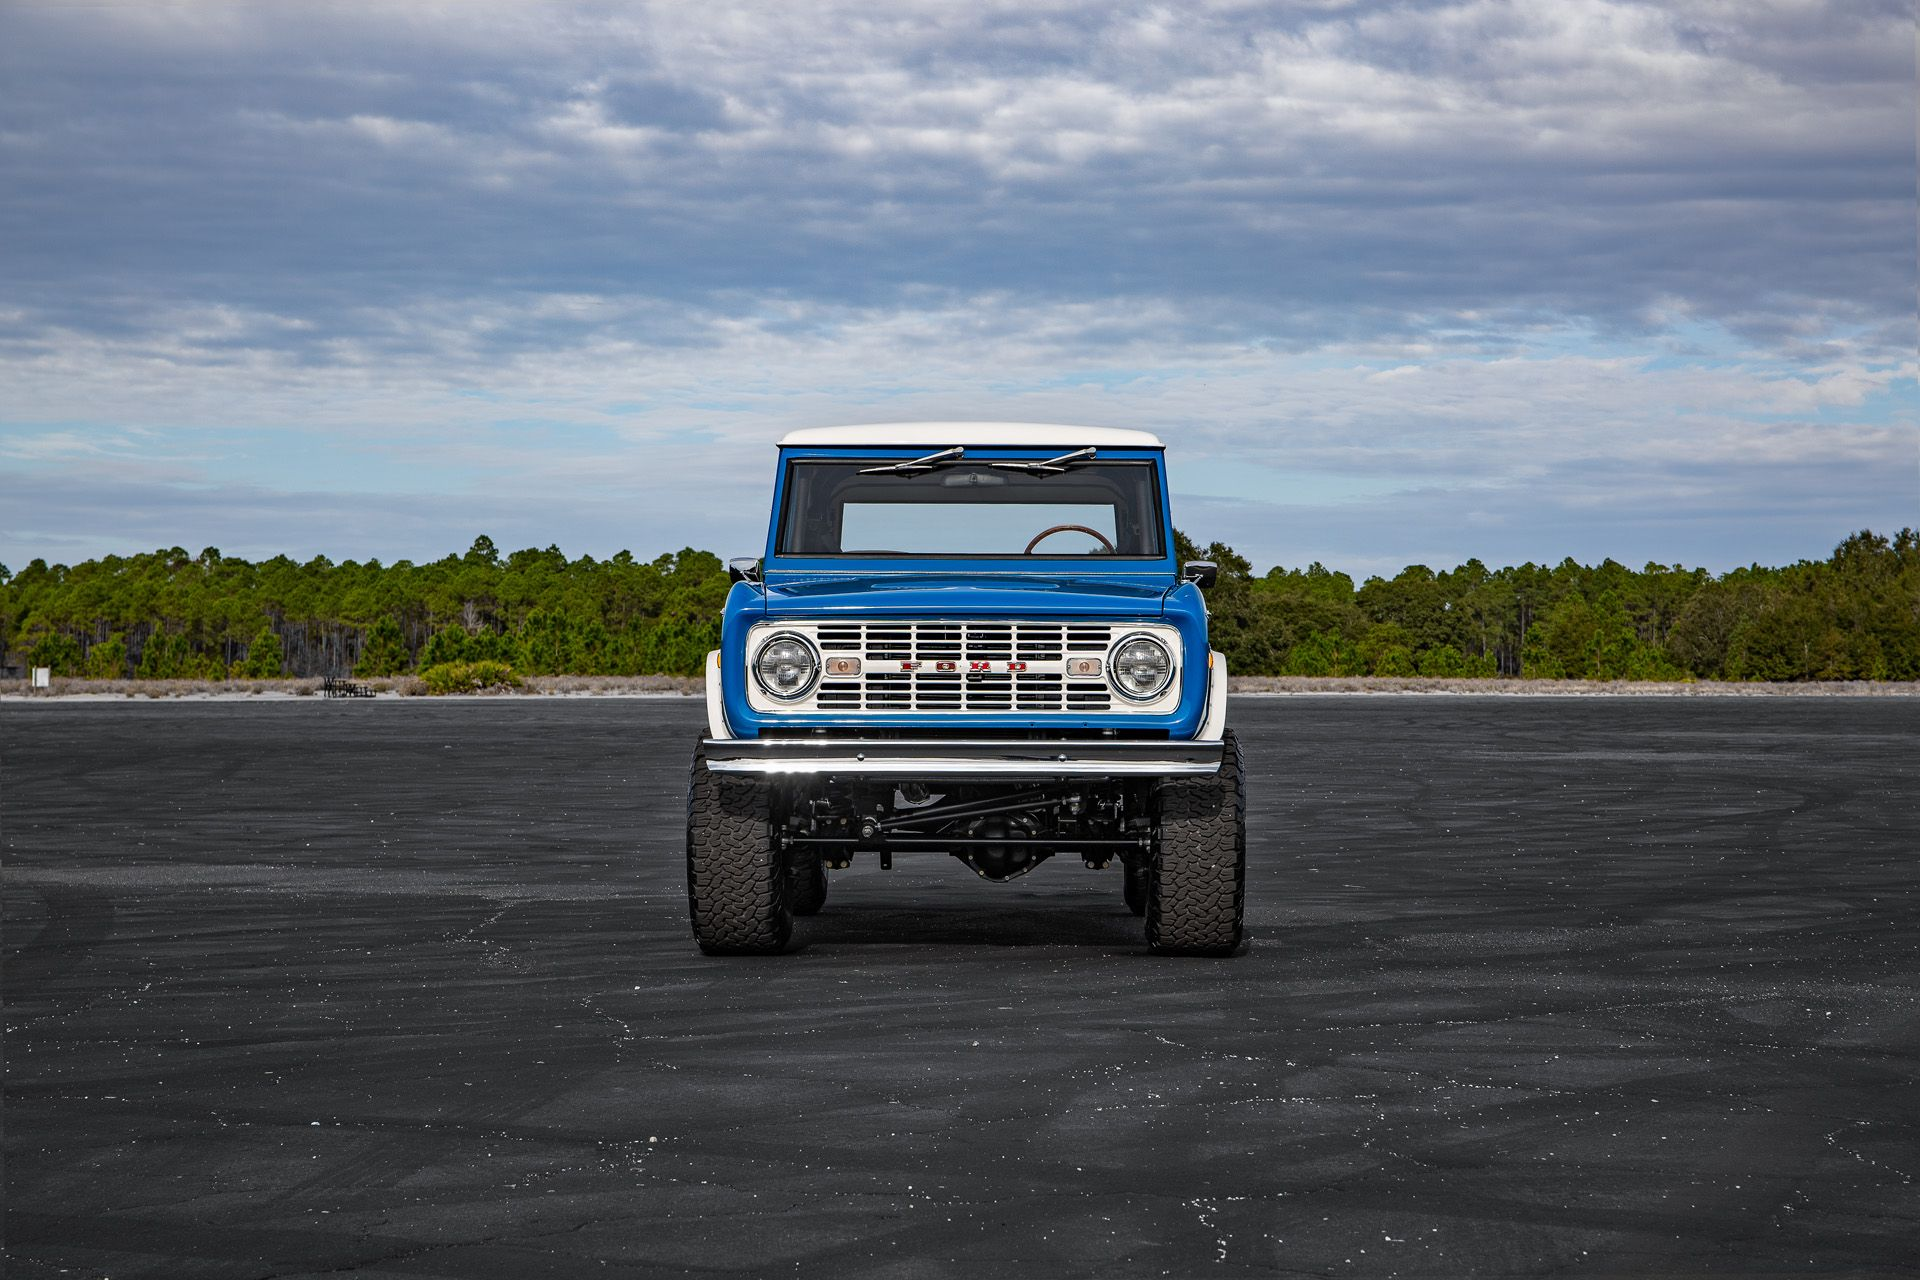 Mountain Early Ford Bronco Front Ford Bronco Bronco Classic Bronco